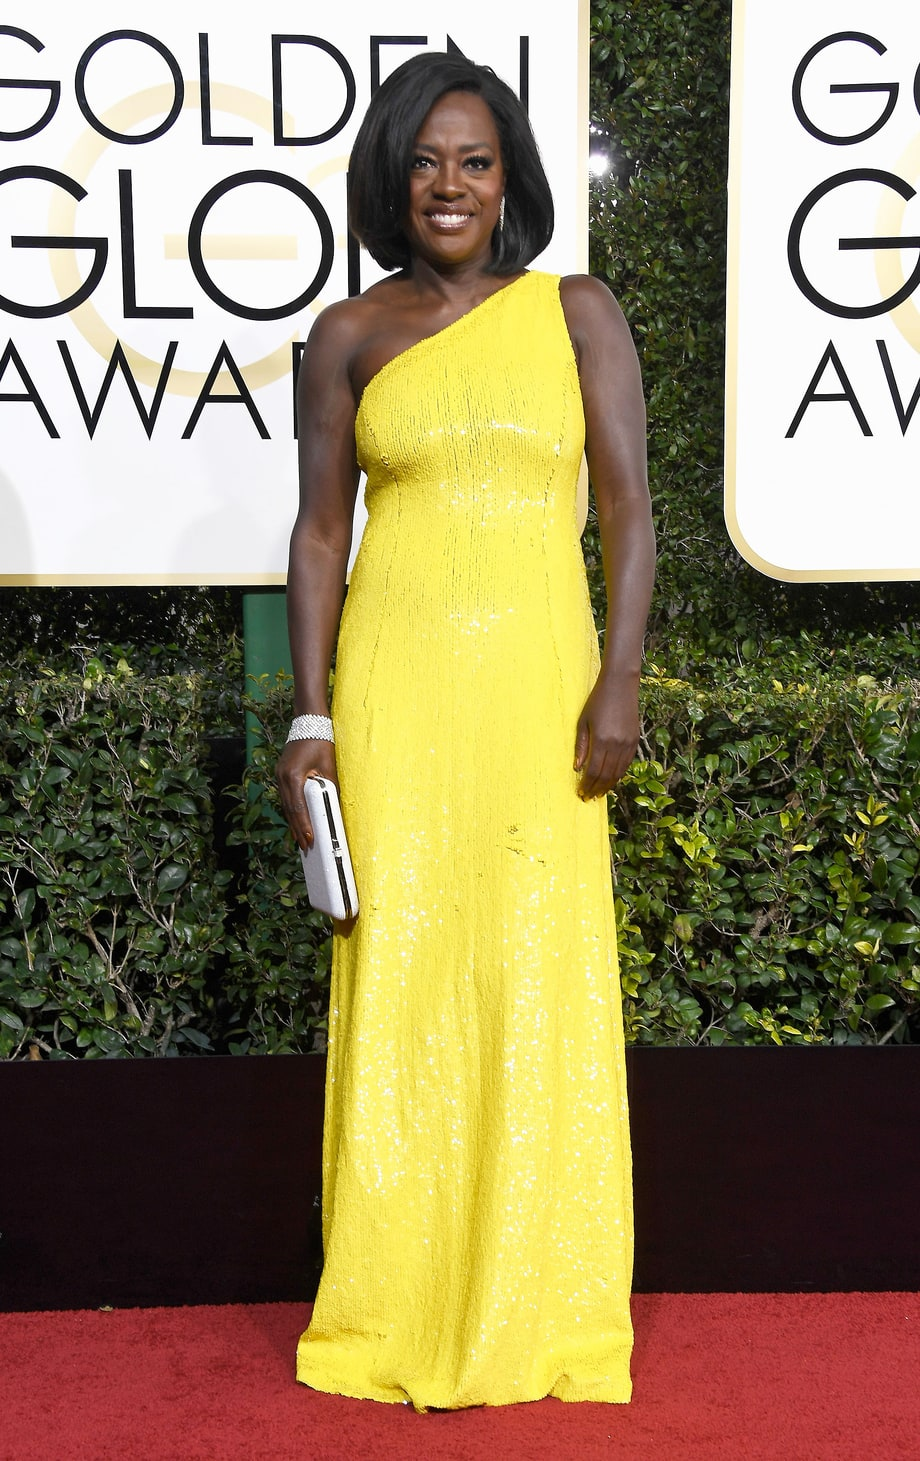 Viola Davis in Michael Kors (Photo Credit: Frazer Harrison / Getty)